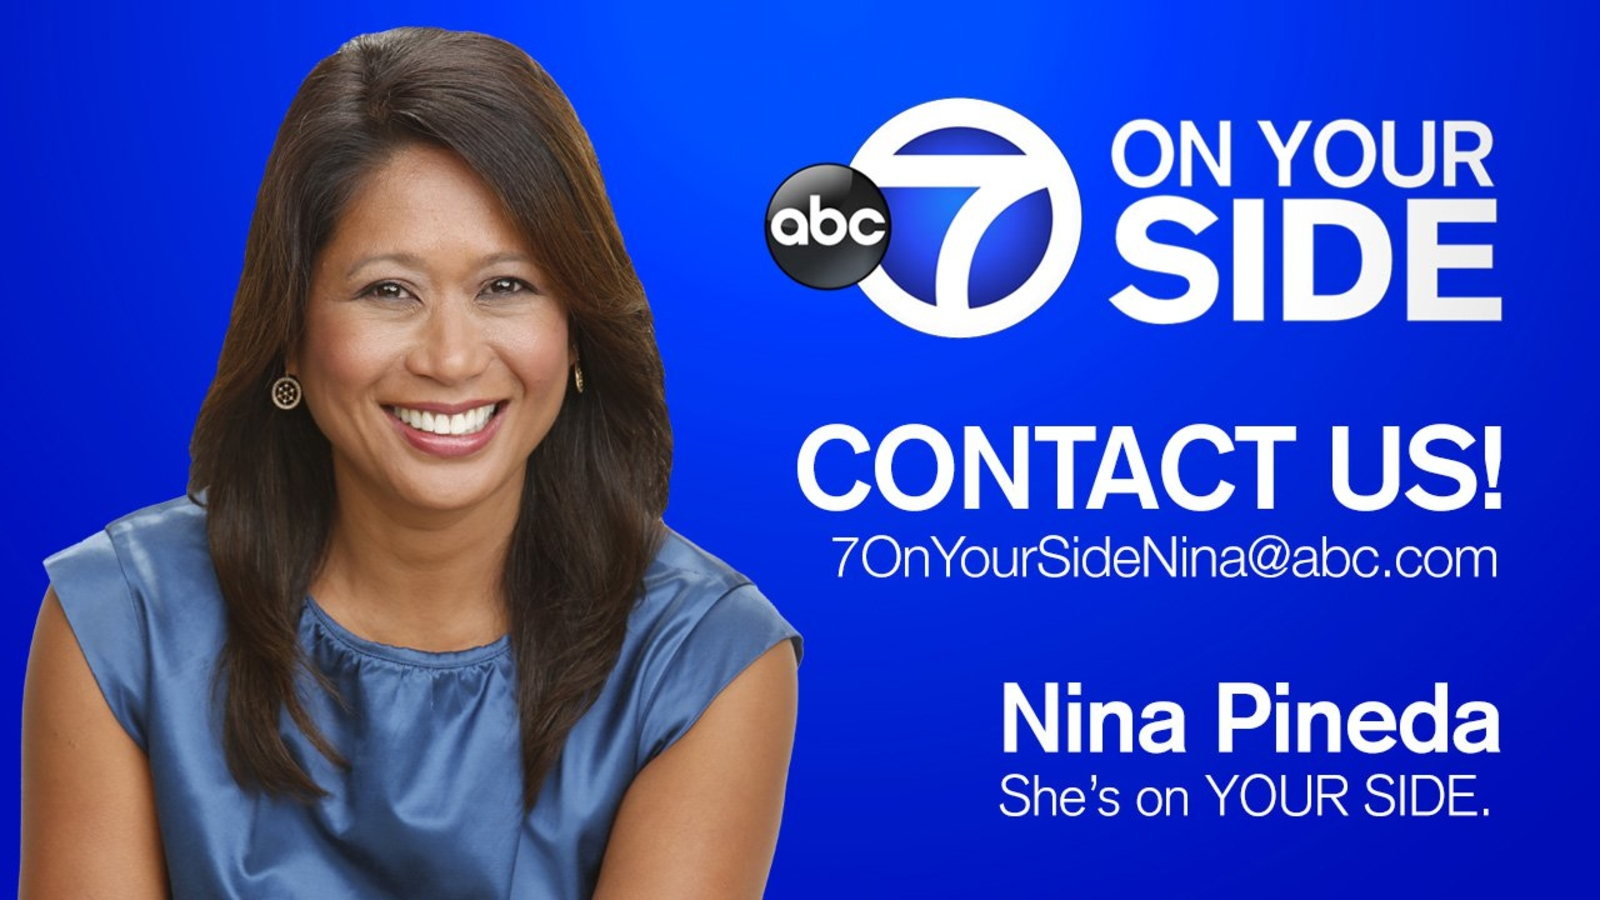 Contact 7 On Your Side and Nina Pineda | abc7ny com